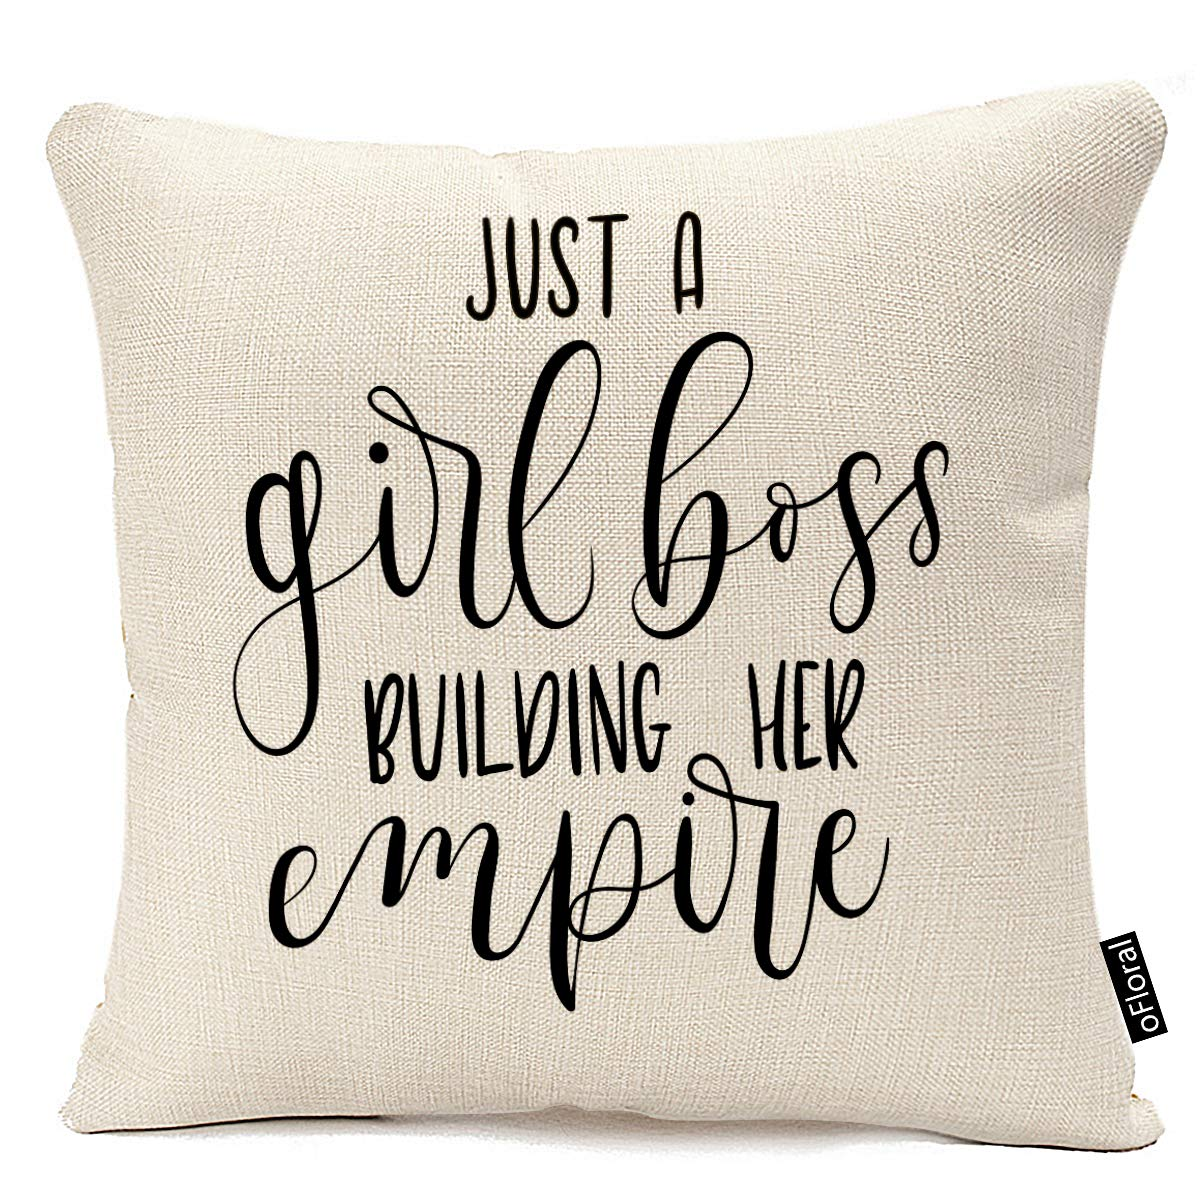 oFloral Throw Pillow Covers 18 X 18 Inch Just Girl Boss Building Her Empire Inspirational Phrase Modern Feminism Quote Lettering Pillow Case Cushion Cotton Linen Home Decor Pillowcase